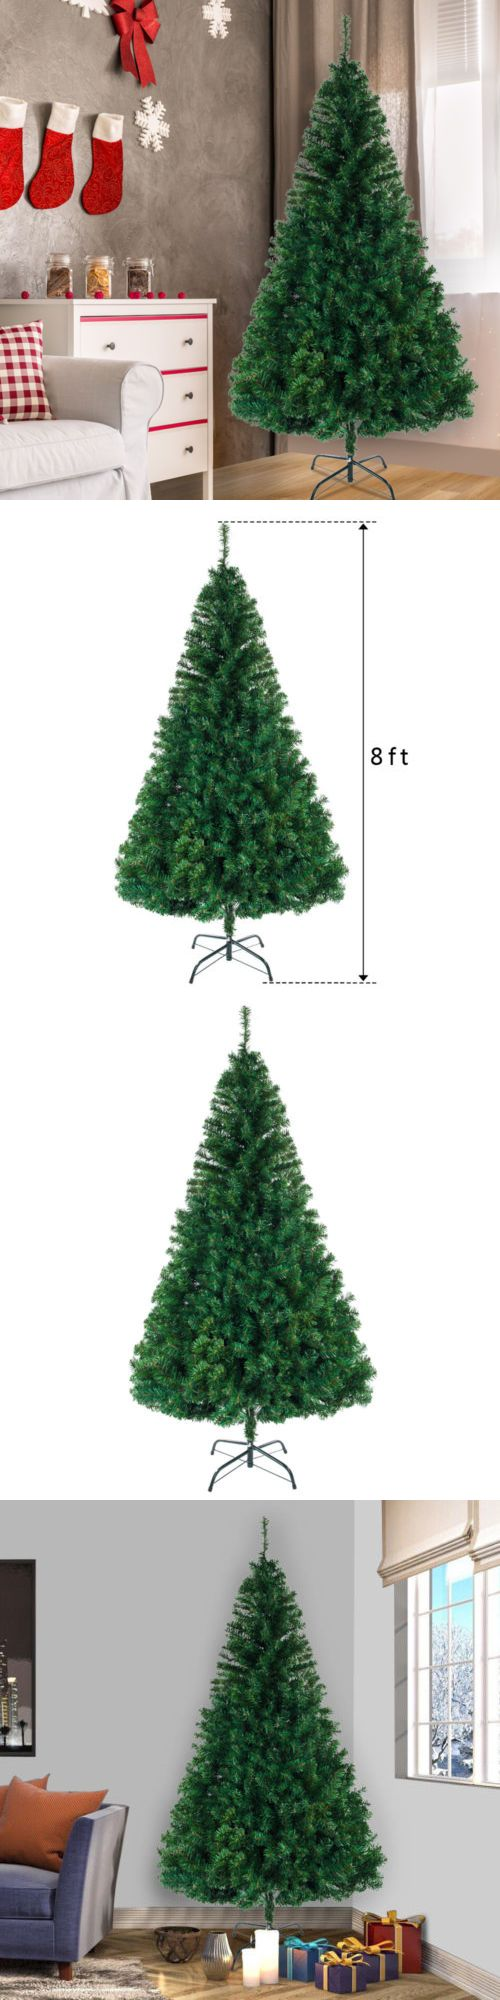 Indoor Outdoor White Artificial Christmas Xmas Tree With Stand Home Decor 8ft Christmas Decorations & Trees Tree